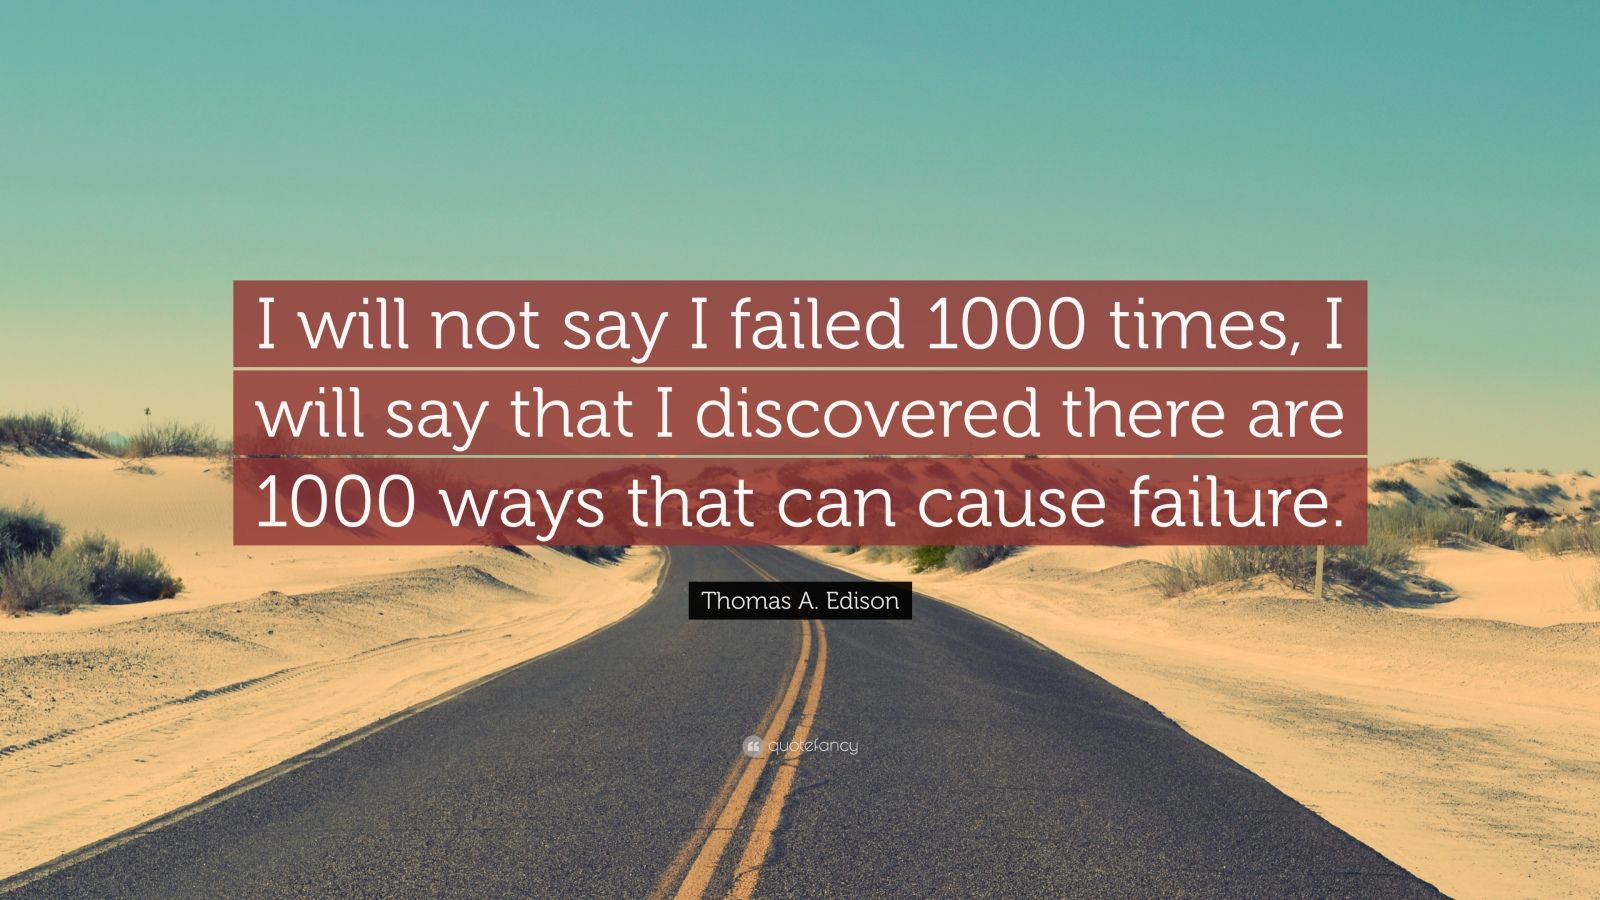 """Thomas A. Edison Quote: """"I will not say I failed 1000 times, I will say that I discovered there are 1000 ways that can cause failure."""""""